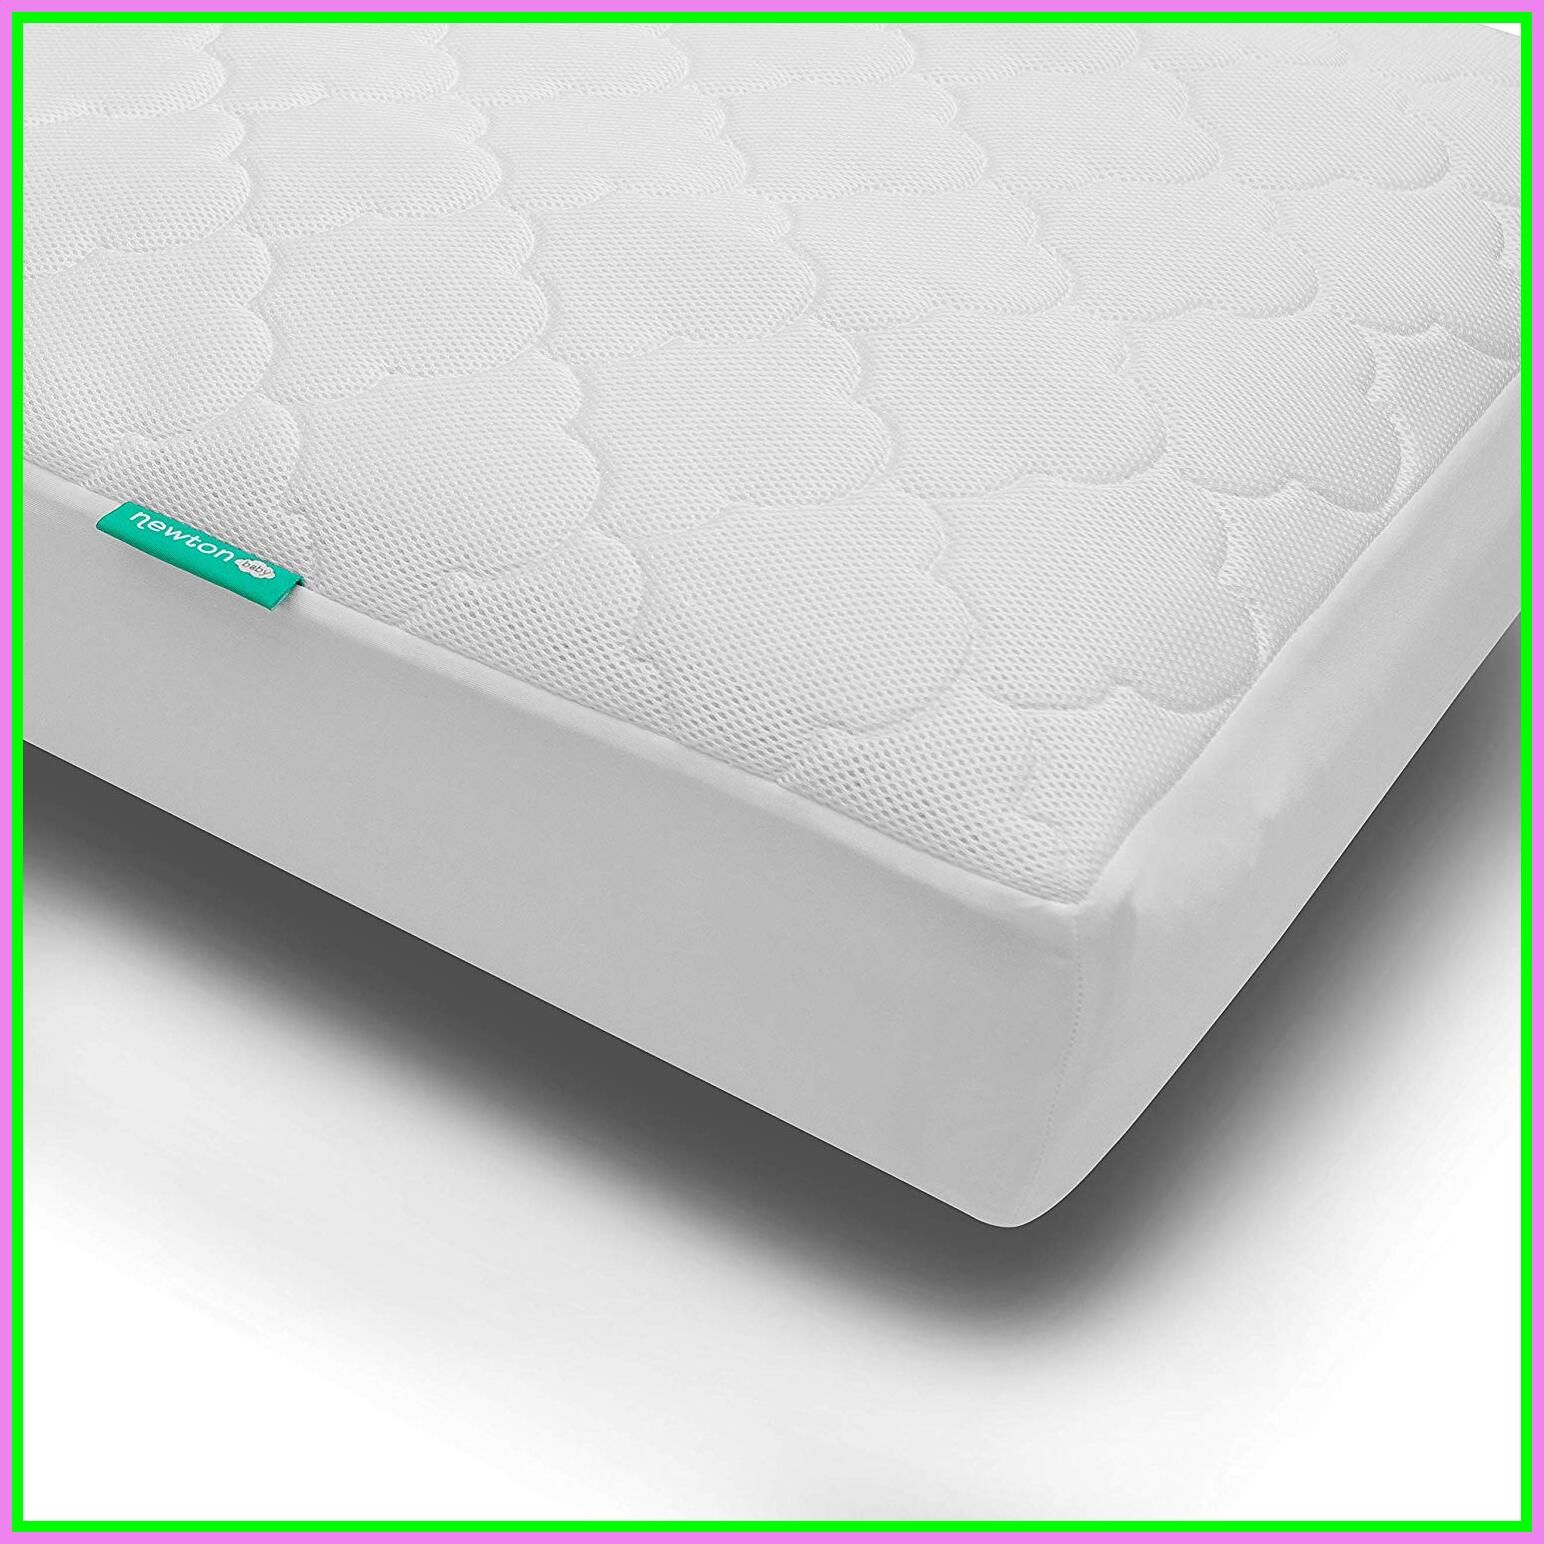 128 Reference Of Newton Crib Mattress Waterproof Cover In 2020 Waterproof Crib Mattress Pad Crib Mattress Pad Crib Mattress Cover